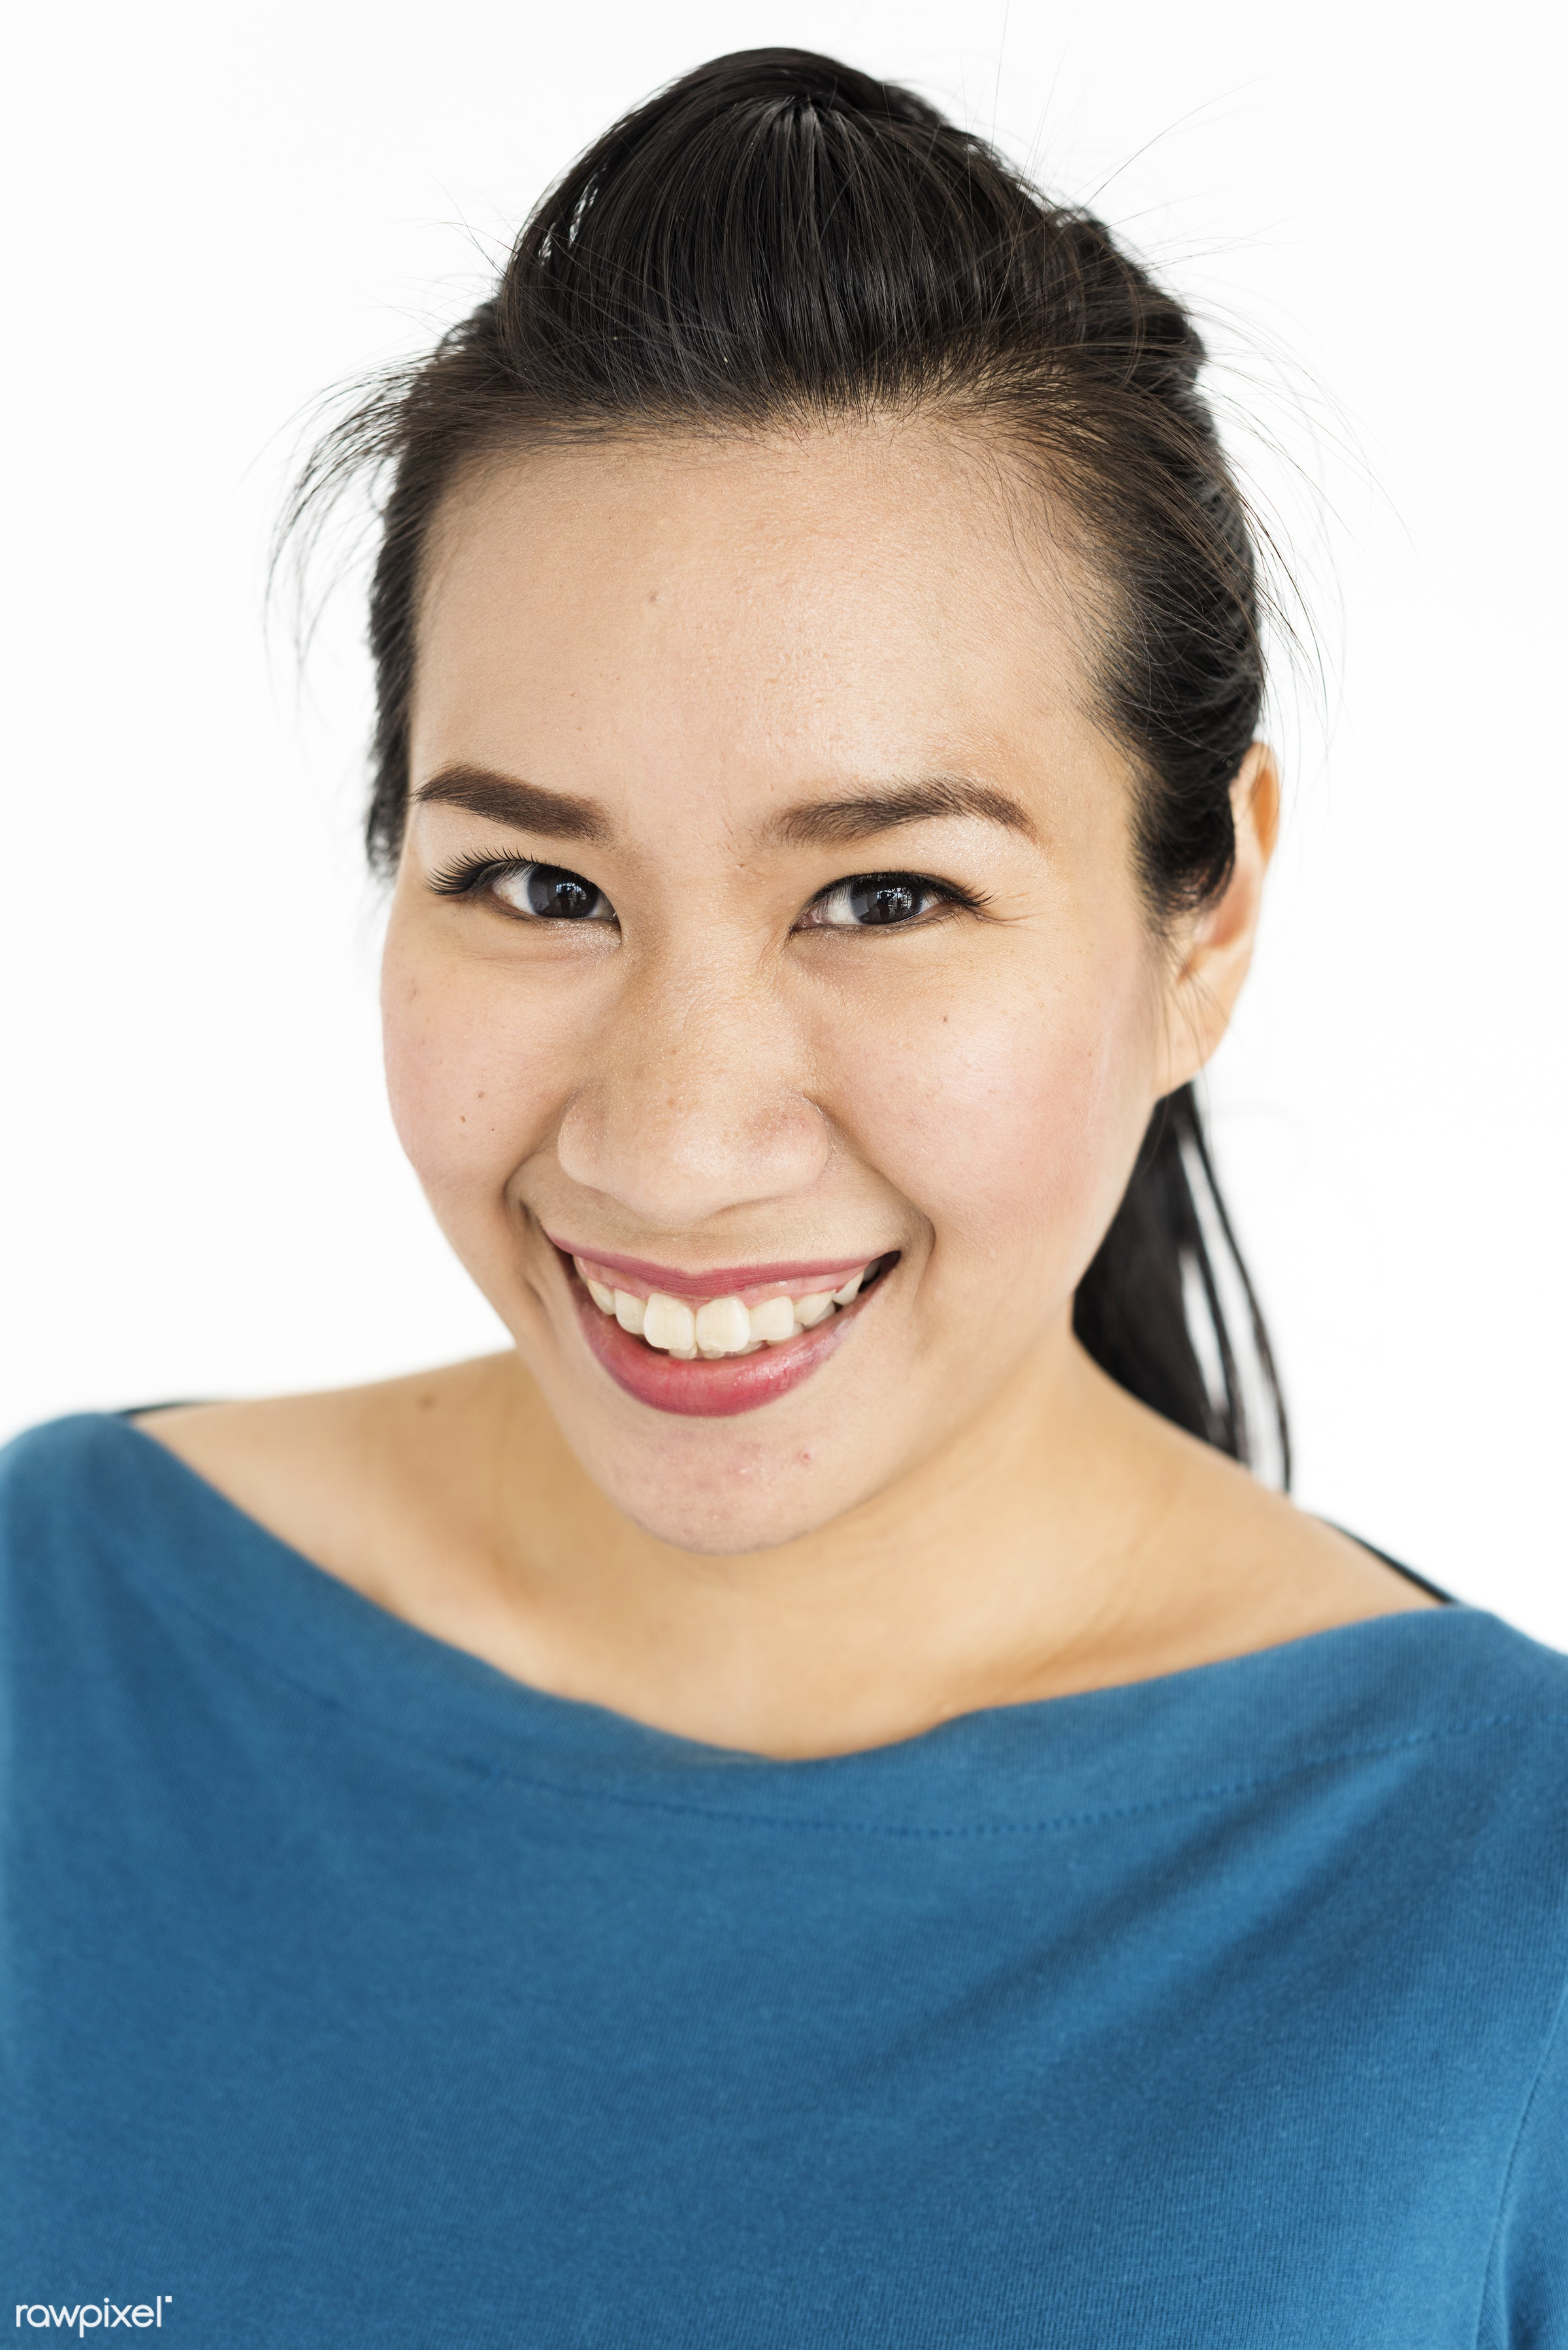 studio, expression, person, people, asian, woman, smile, cheerful, smiling, isolated, white, asian woman, happiness,...